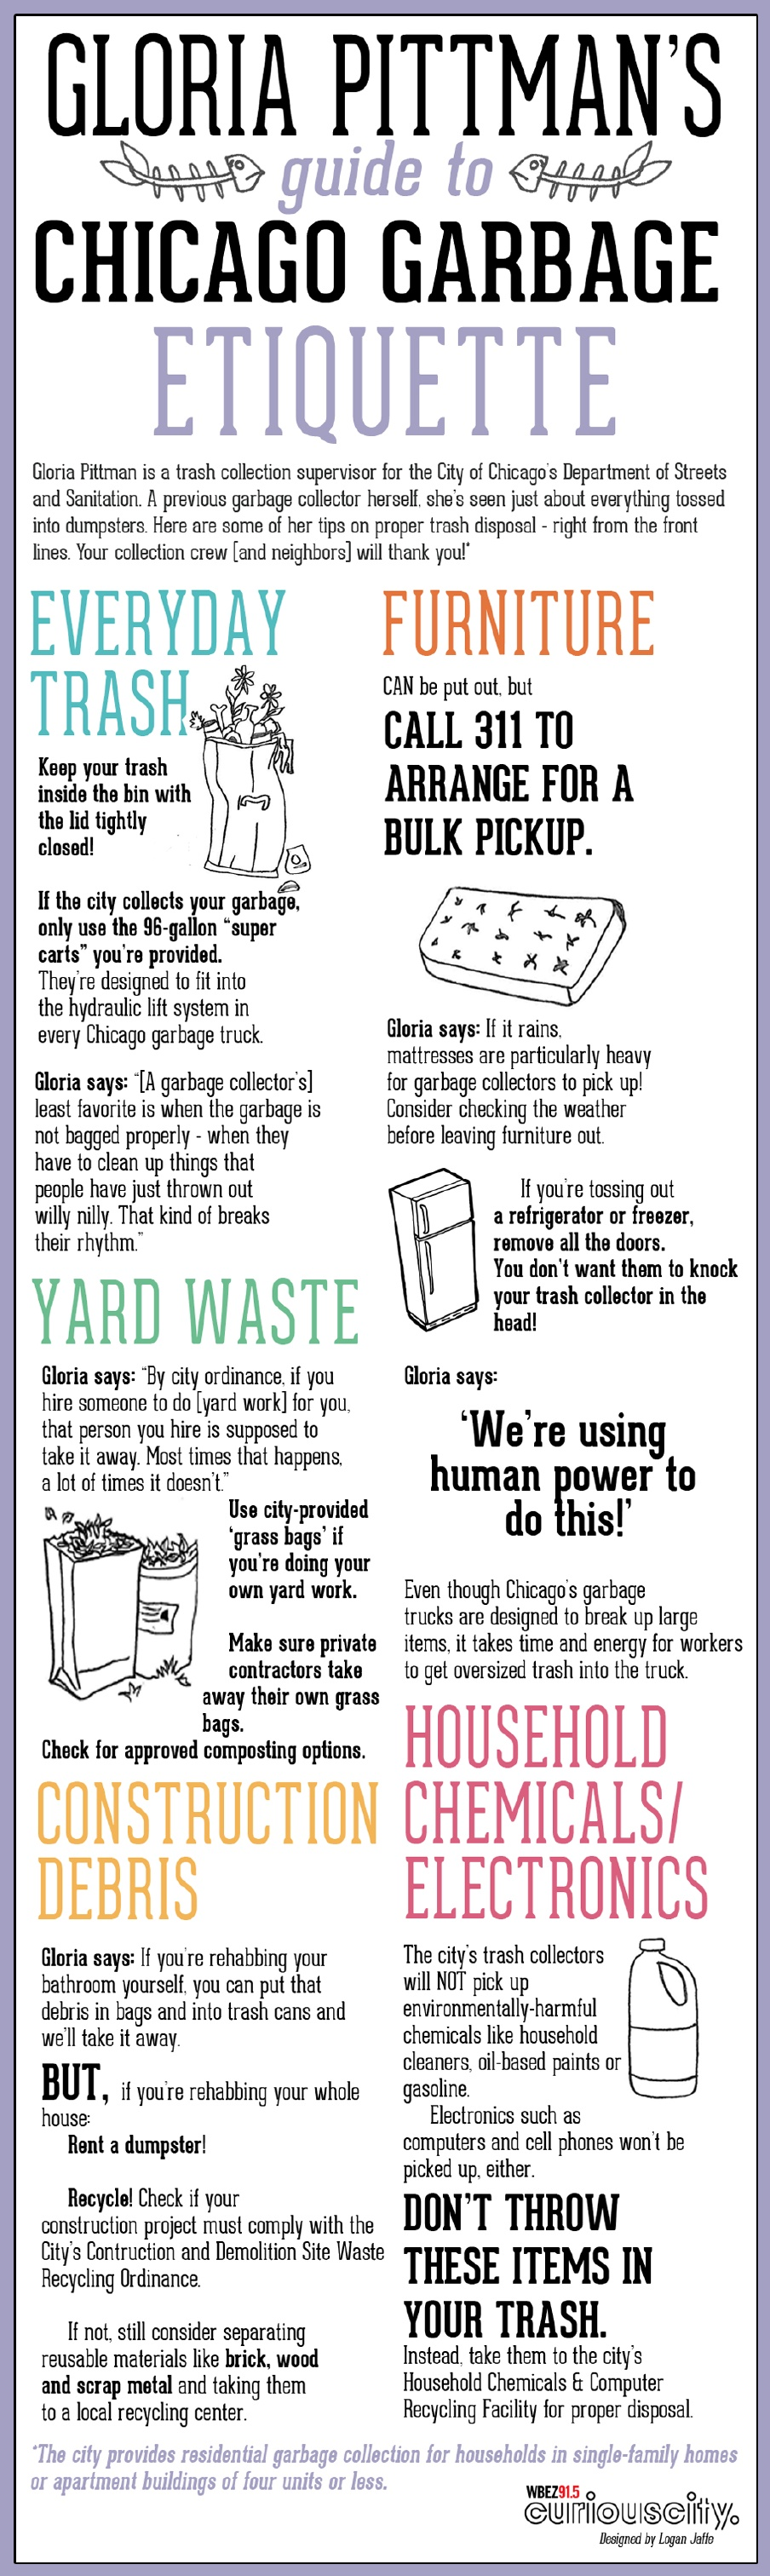 Gloria Pittman S Guide To Chicago Garbage Etiquette Etiquette